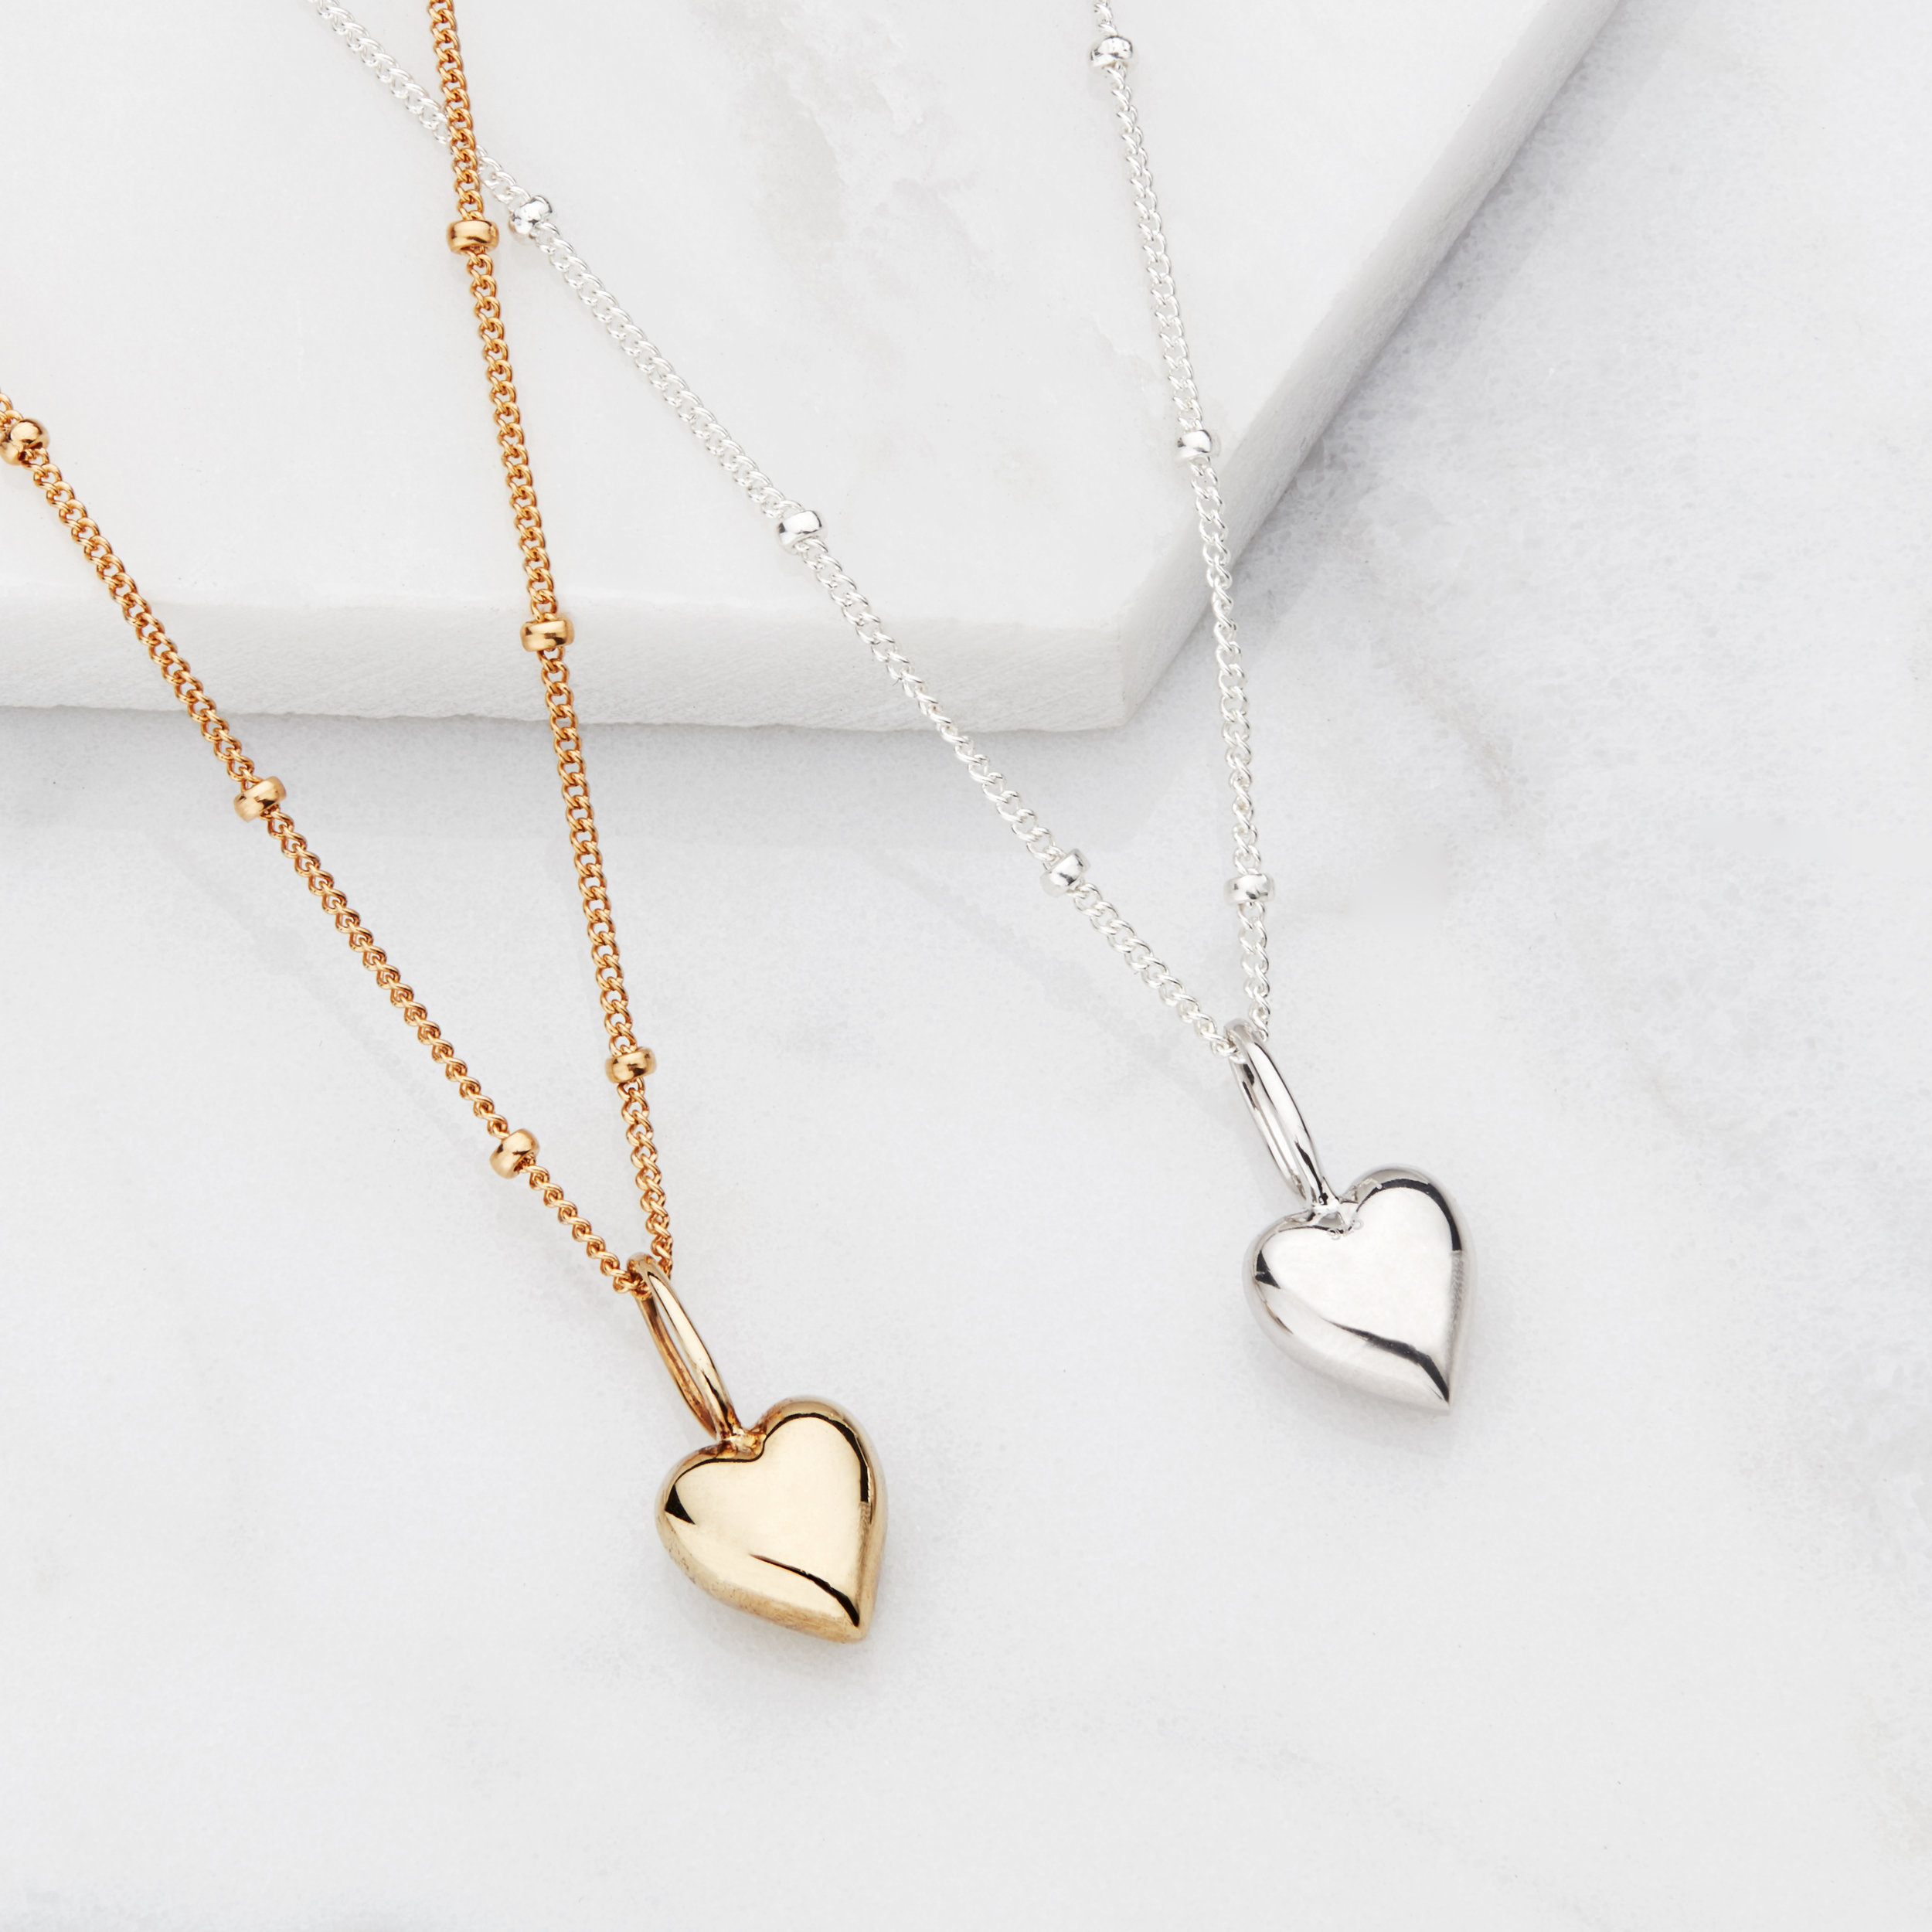 Heart Necklace Heart Pendant 18k Gold Plated over Sterling Silver